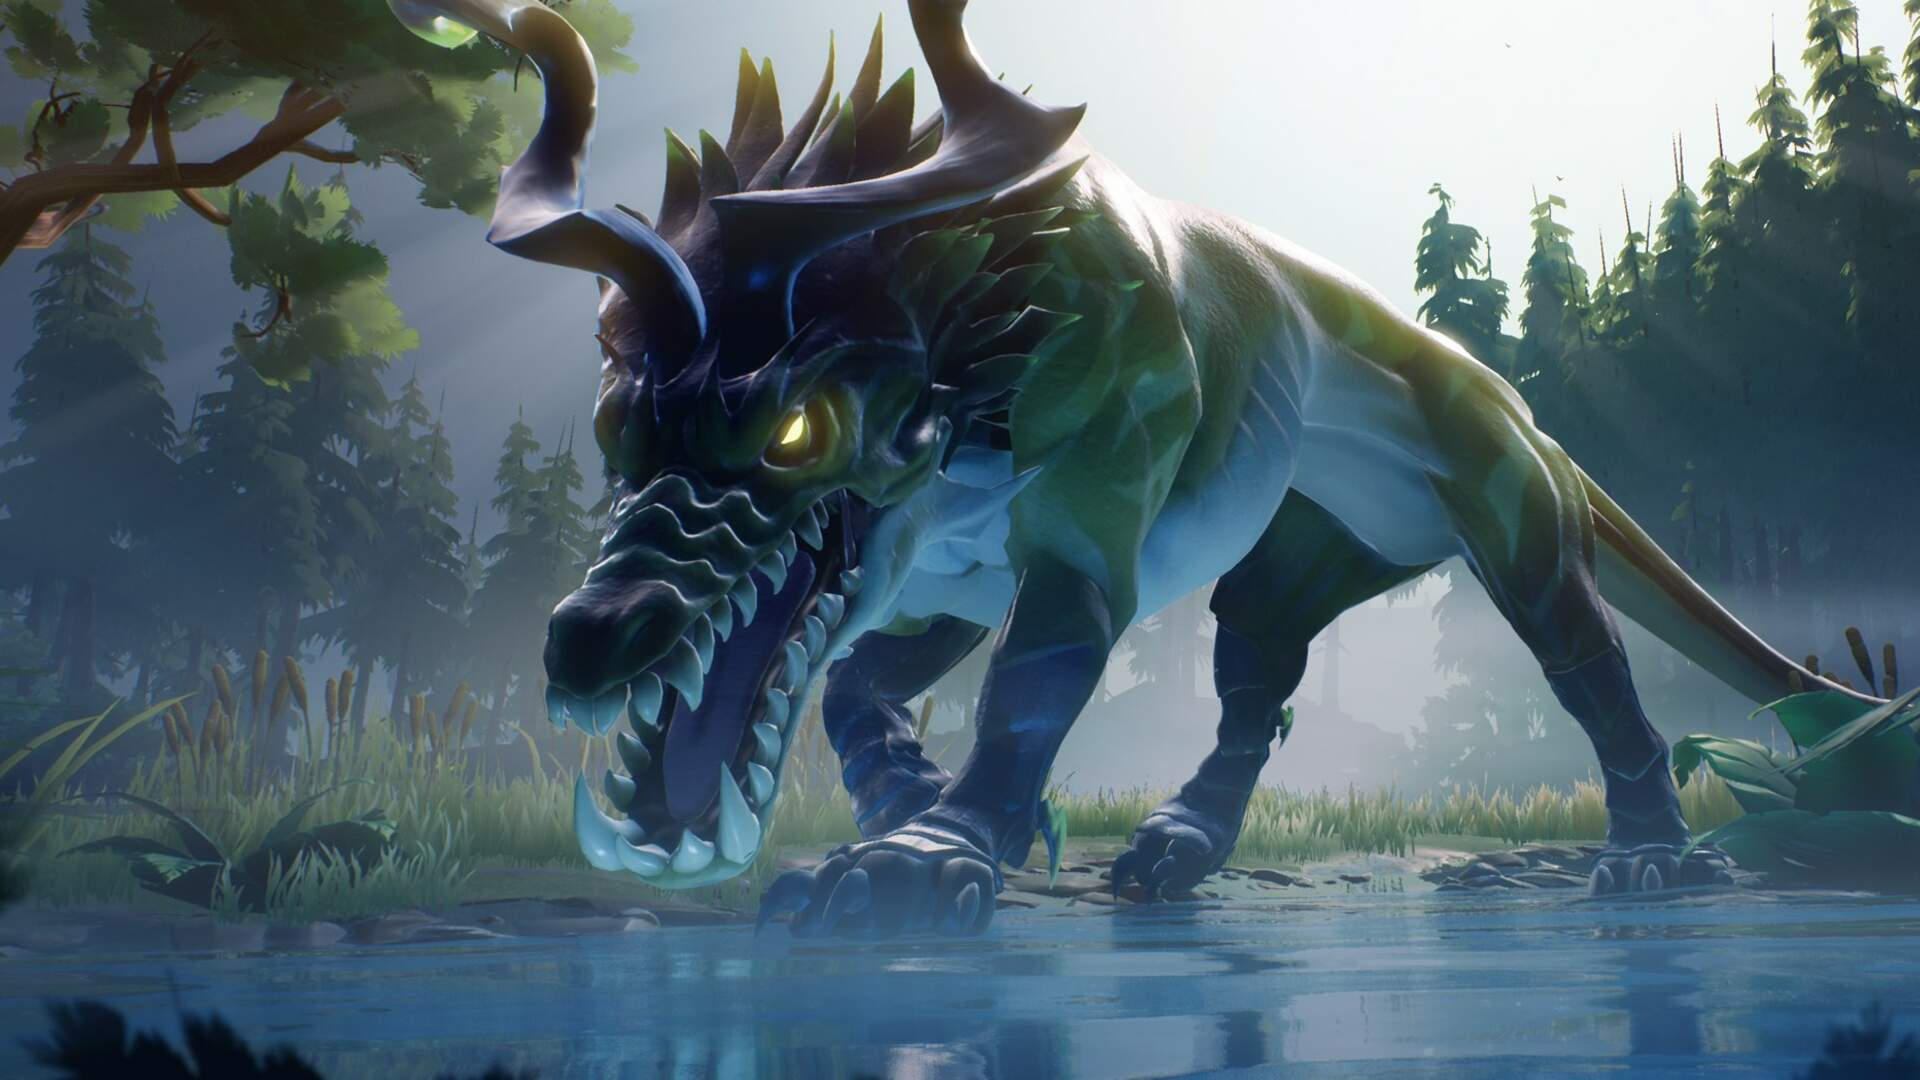 Dauntless Cross Platform - How to Opt-in to Dauntless Crossplay and Account Link